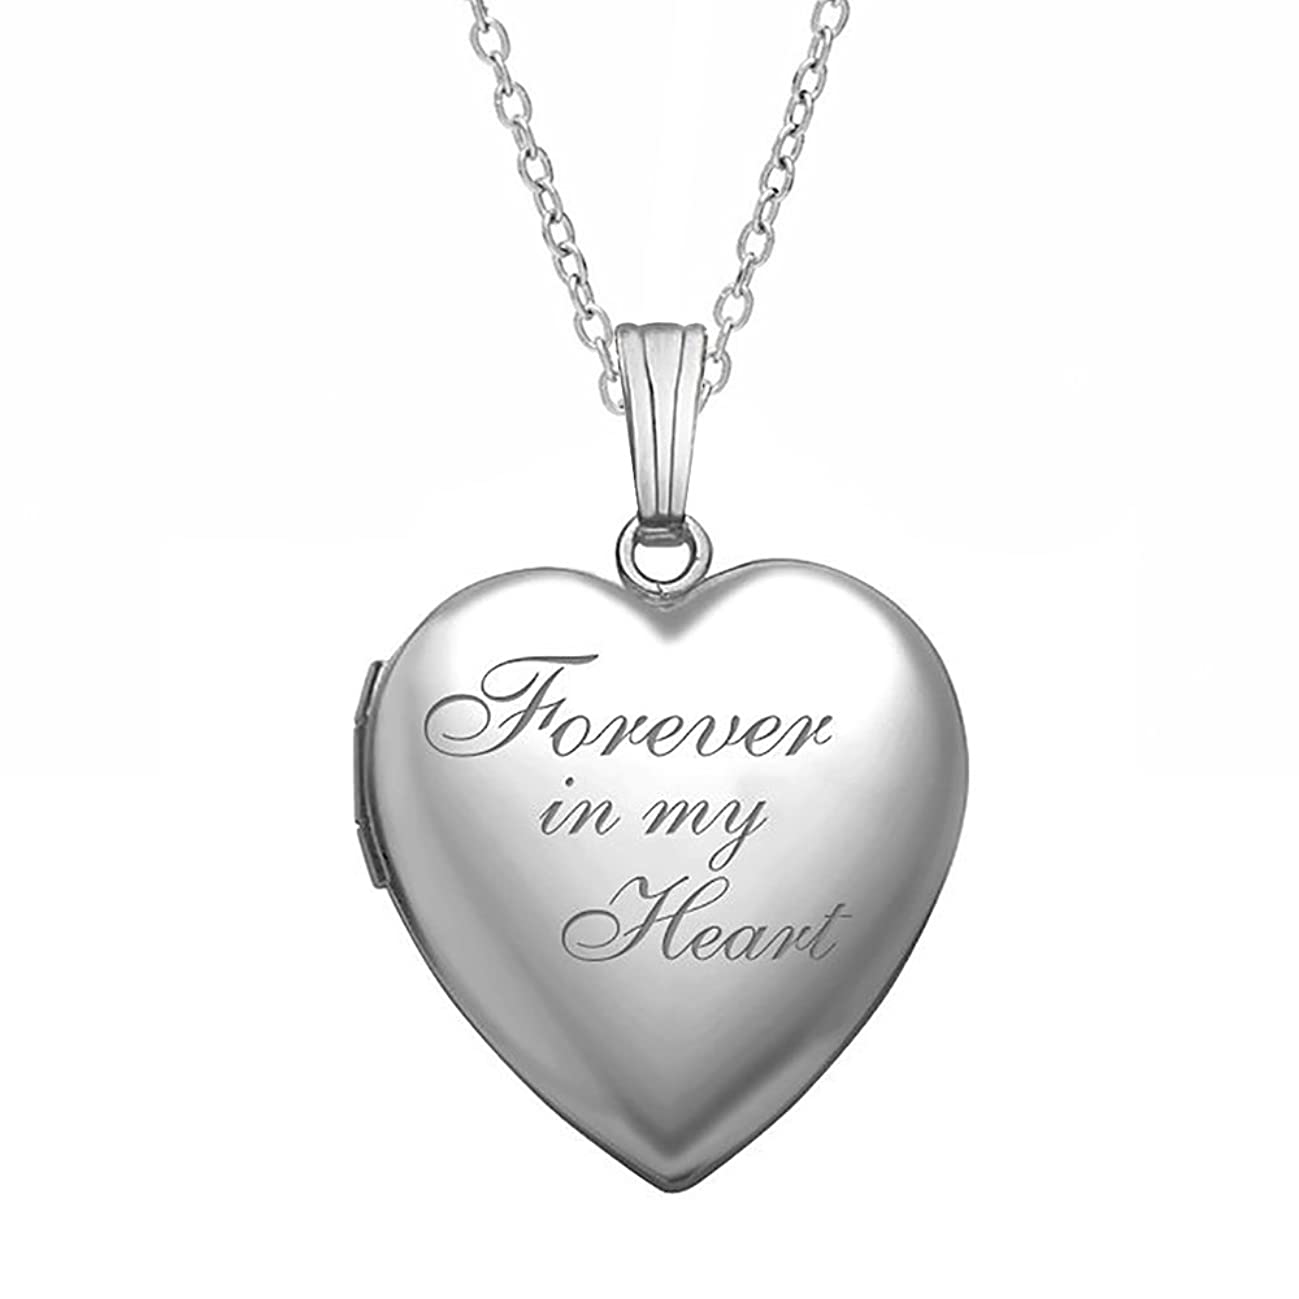 PicturesOnGold.com Forever in My Heart Locket Necklace Pendant in Sterling Silver - 3/4 Inch X 3/4 Inch - Includes 18 inch Cable Chain